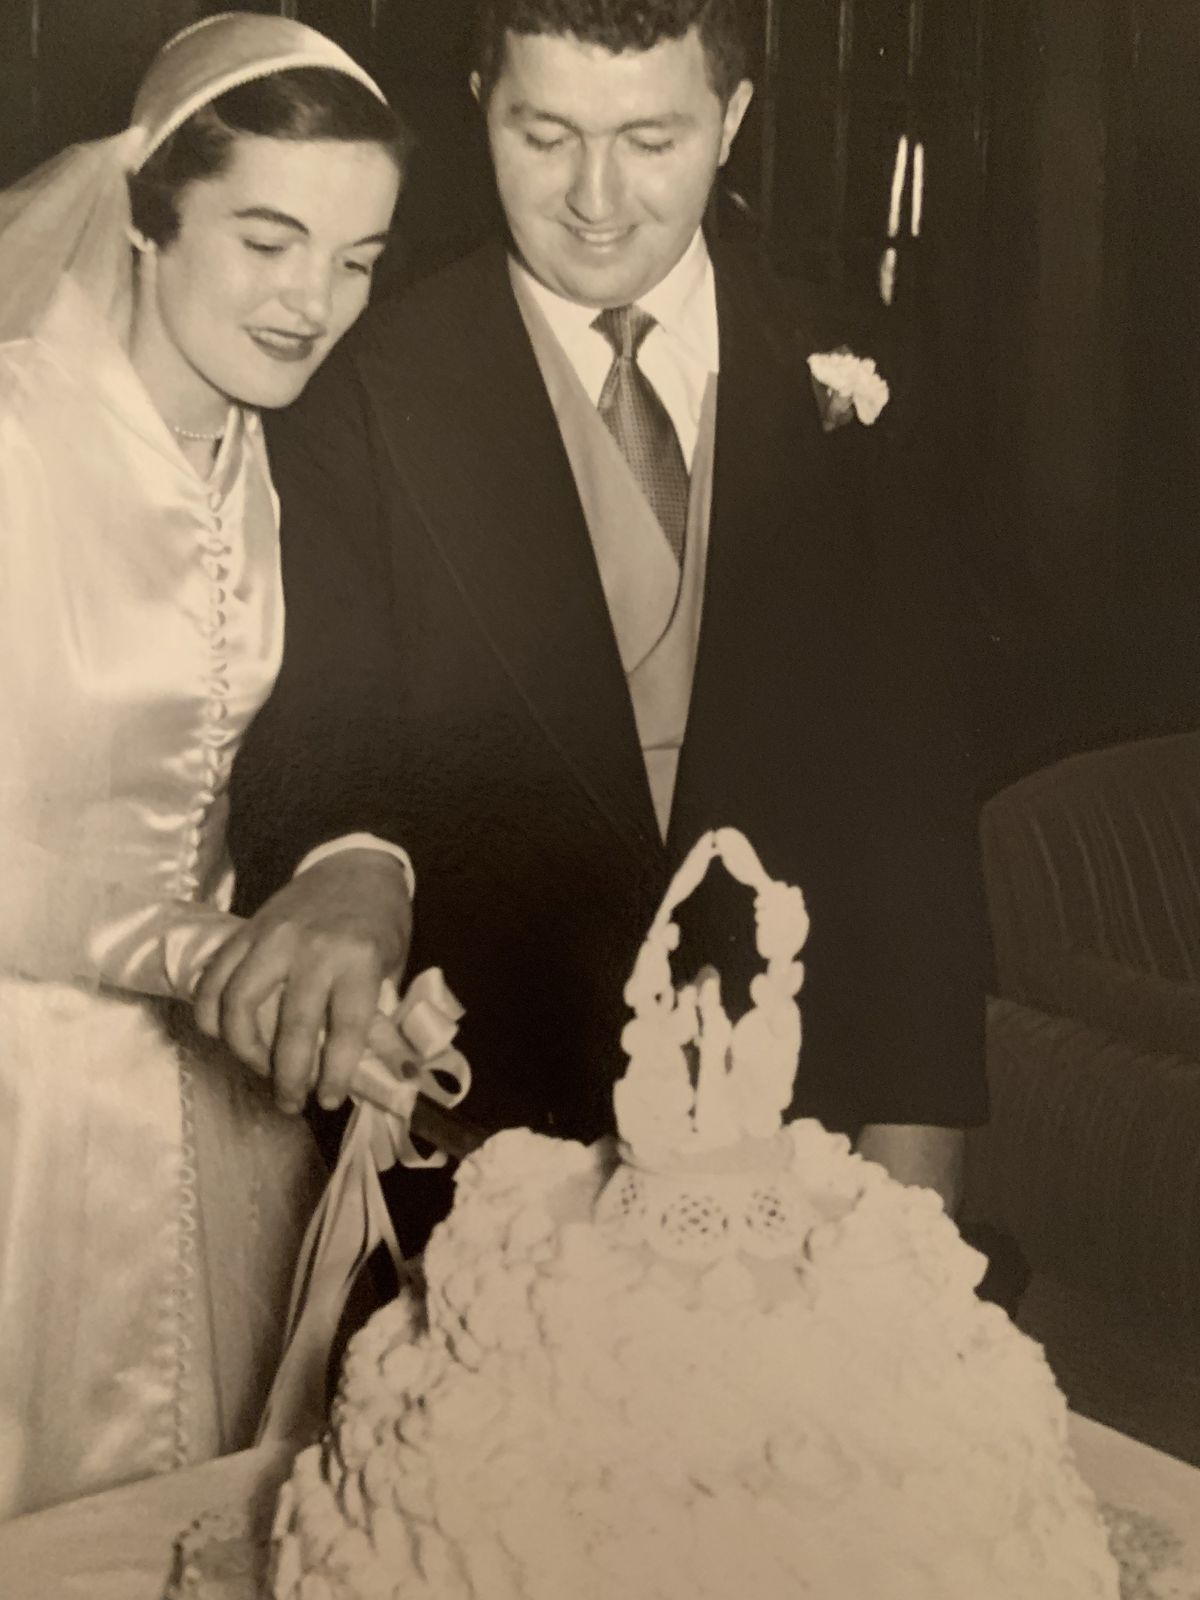 Mille and Ted Cronin at their wedding.